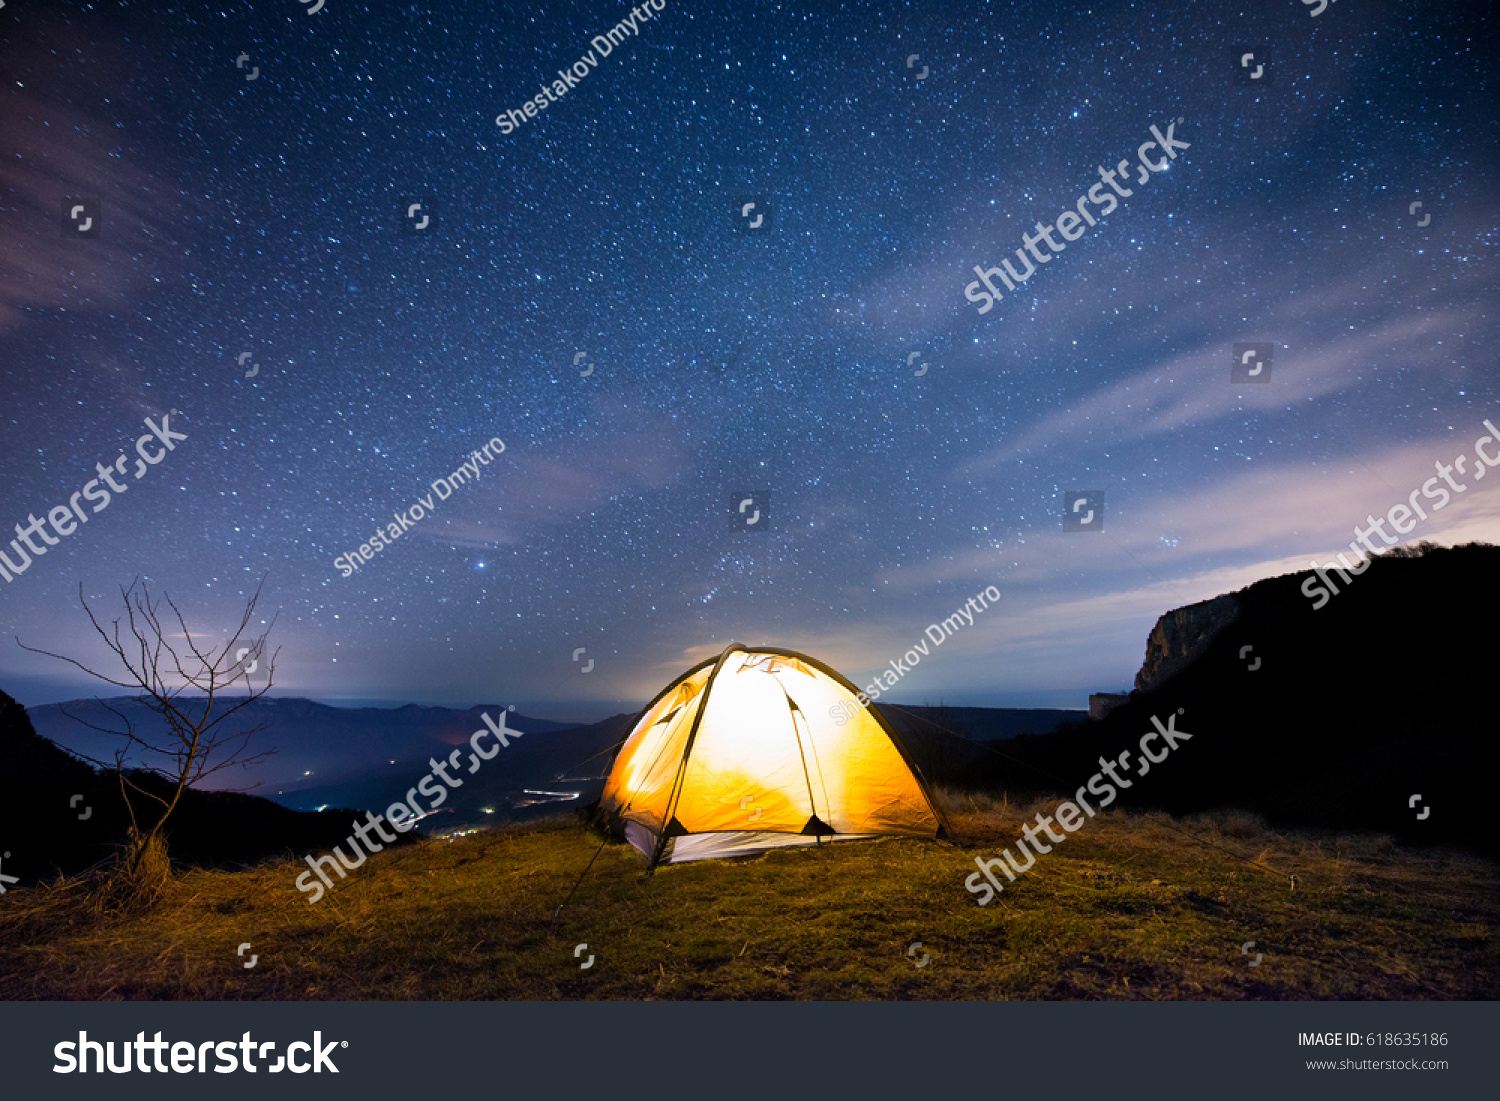 Glowing tent in the mountains under a starry sky & Glowing Tent Mountains Under Starry Sky Stock Photo 618635186 ...